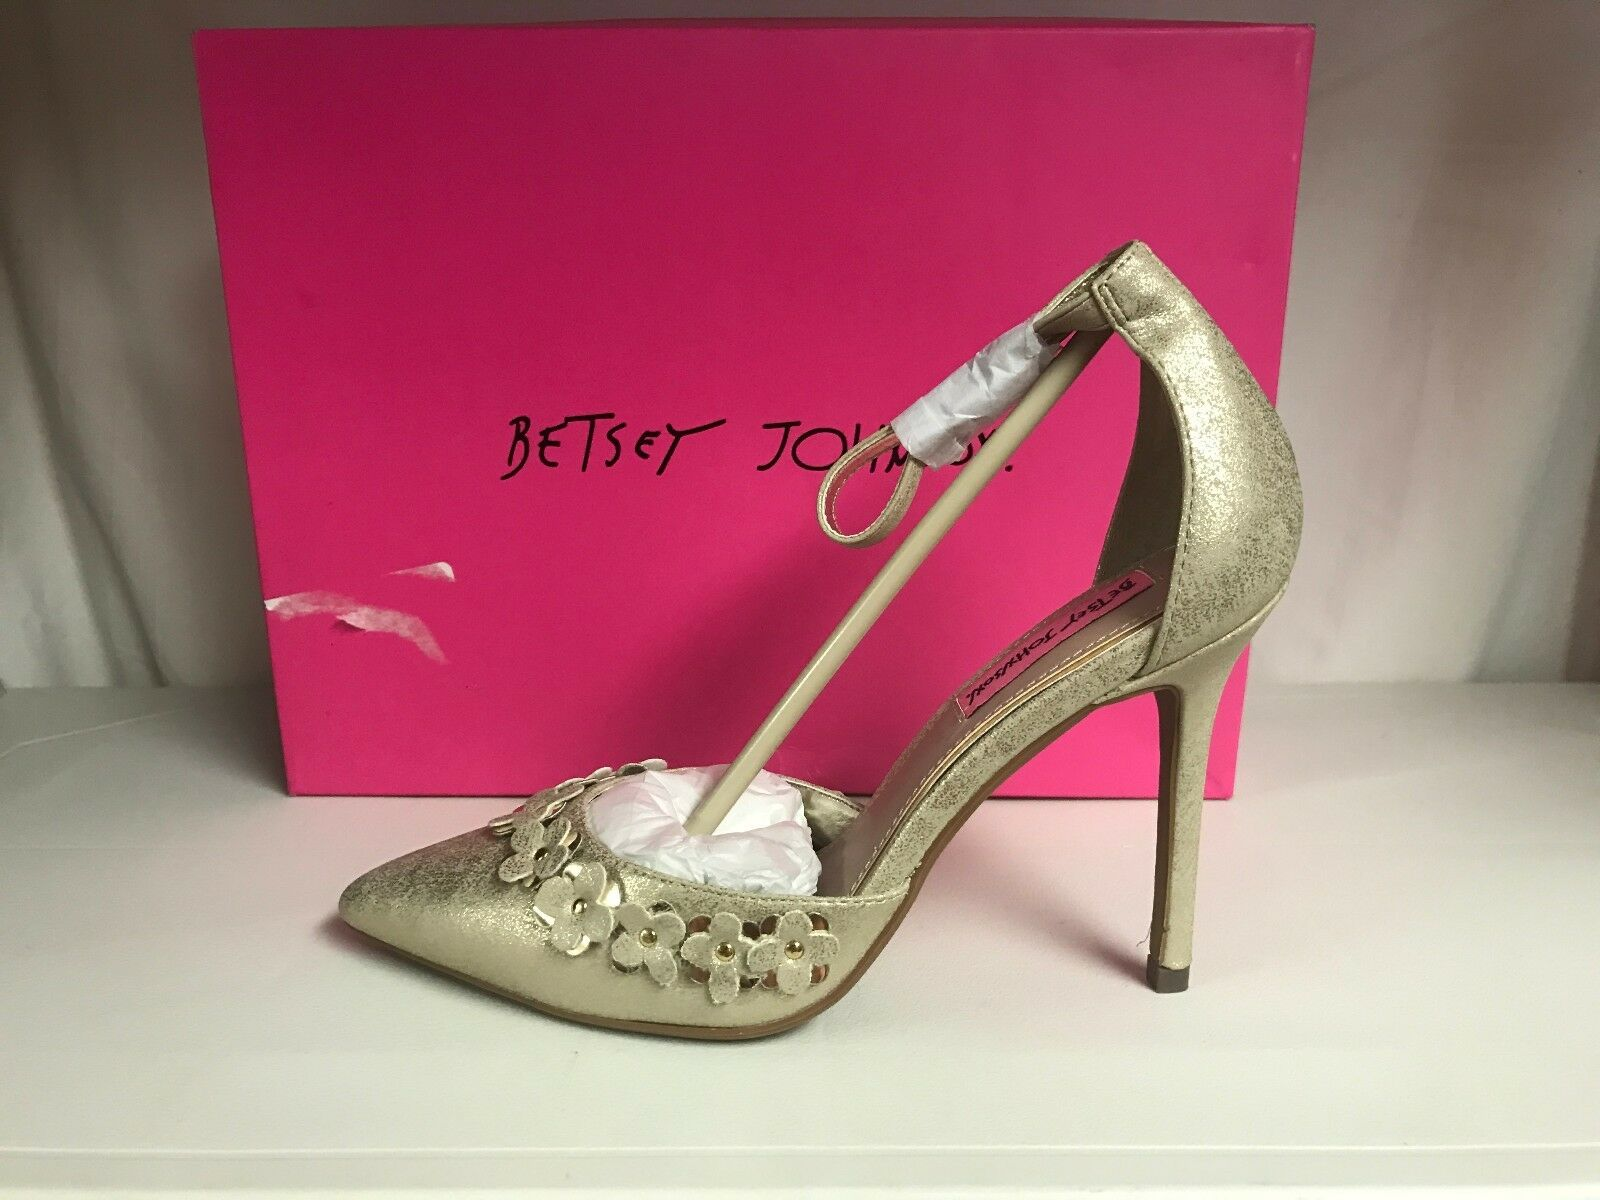 Betsey Johnson Viera Flower Appliques Pointed Closed Toe Silhouette or